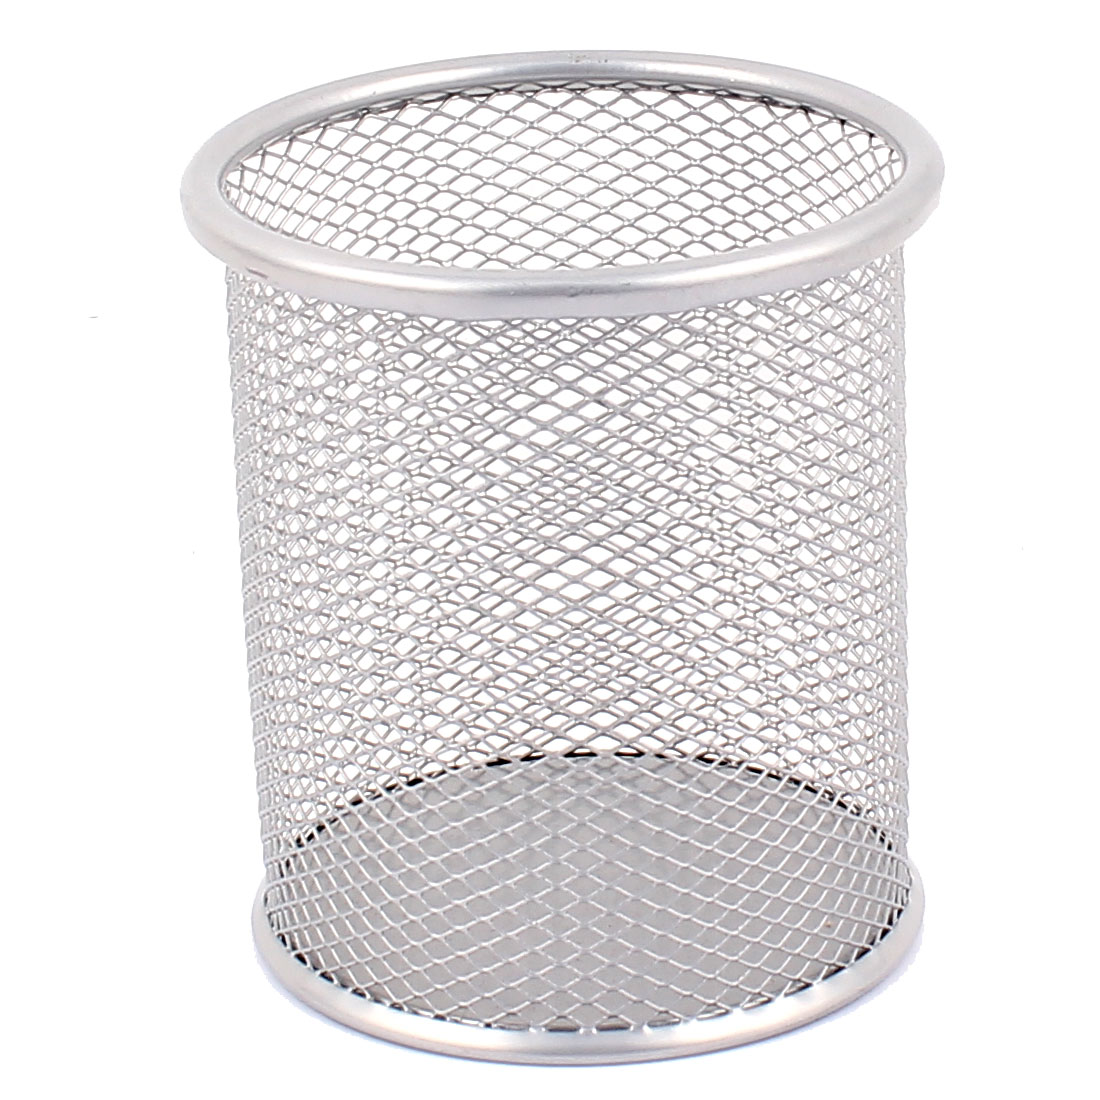 Office School Metal Cylinder Shape Mesh Pen Pencil Holder Container Storage Organizer Gray